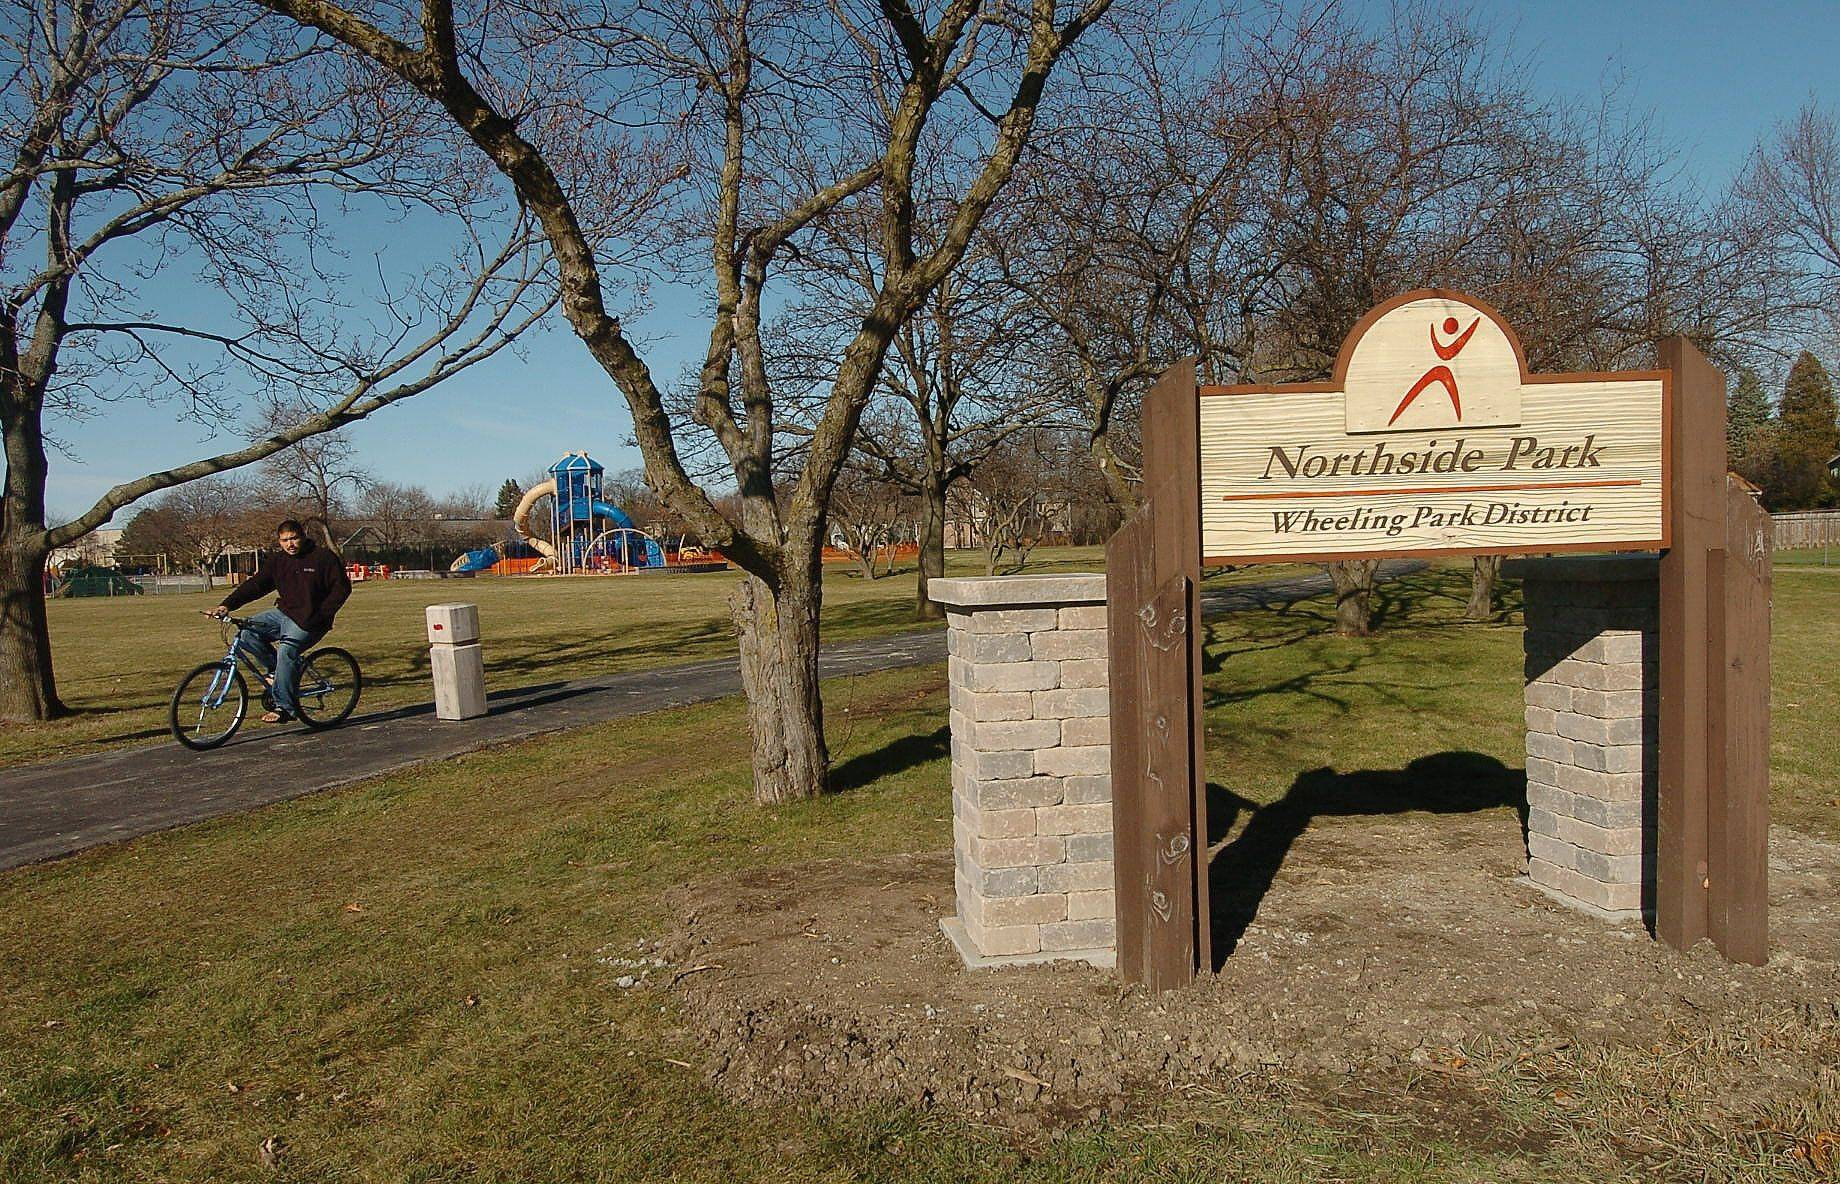 Northside Park in Wheeling reopened recently after a three-month, $250,000 renovation project that included adding new playground equipment to the 3-acre site.